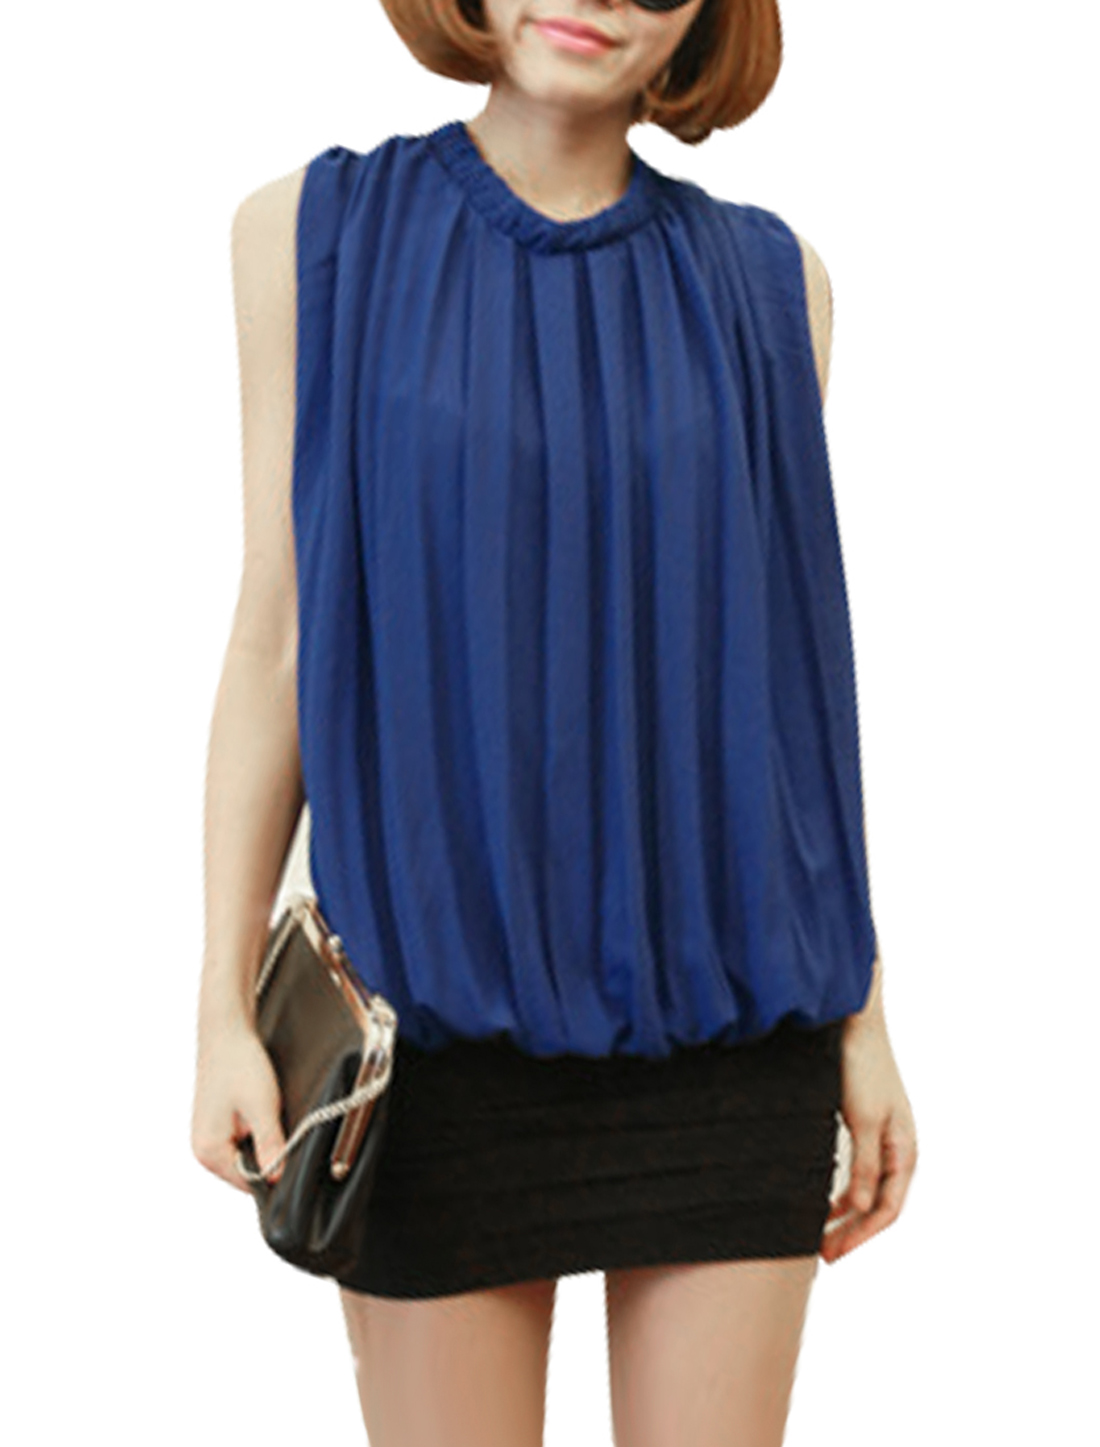 Ladies Sleeveless Lining Blouse Royal Blue XS